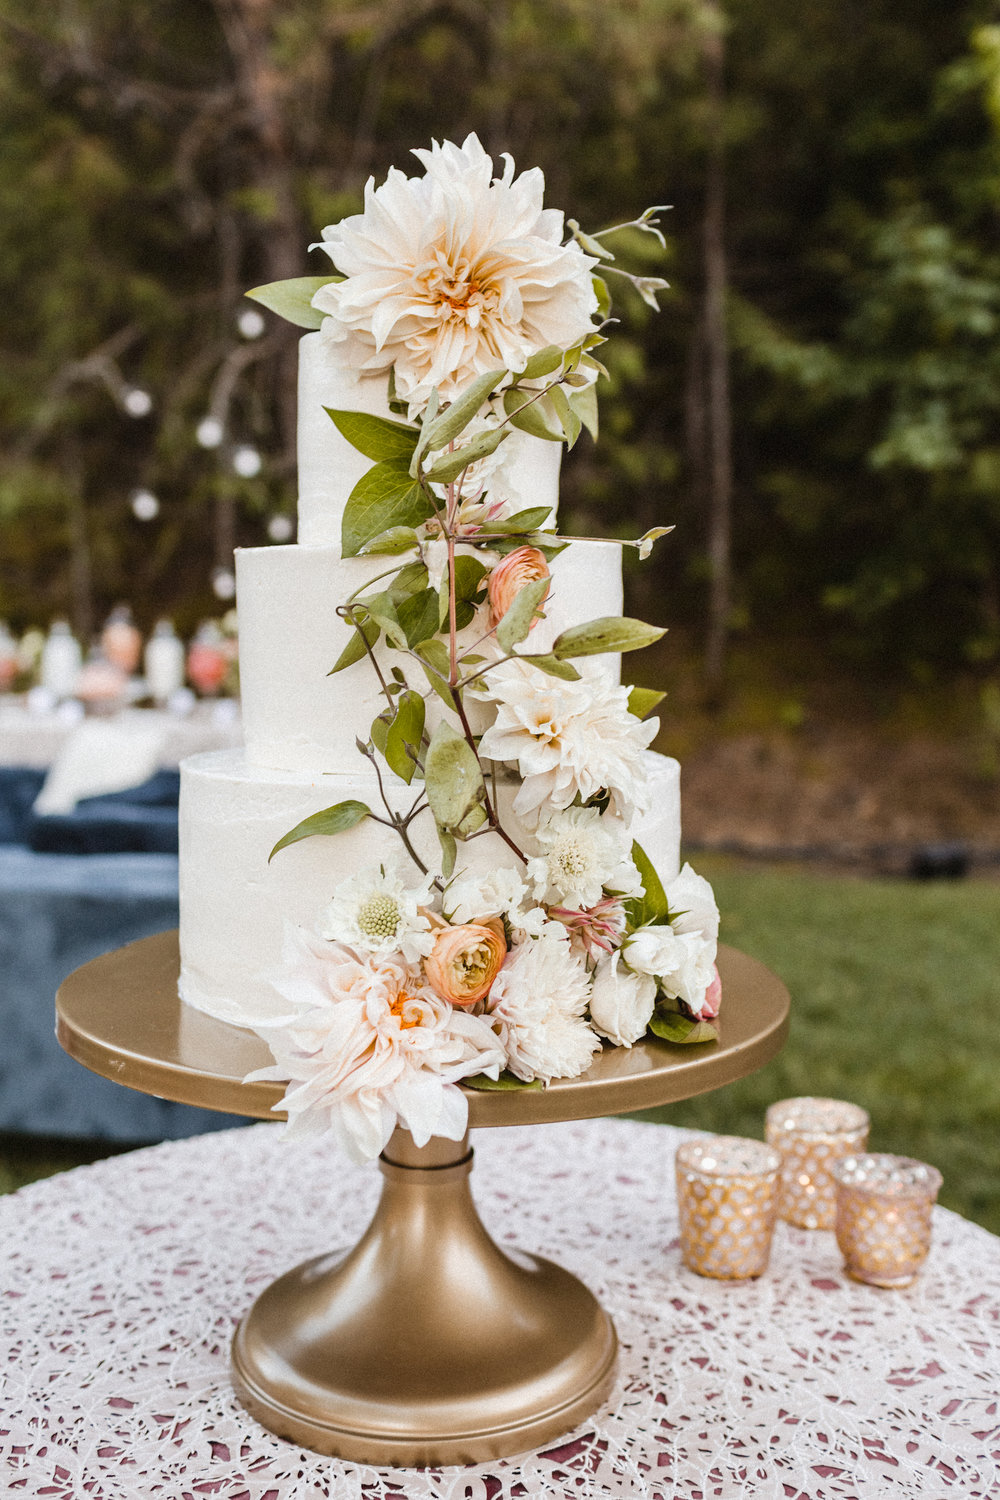 Julianne Hough and Brooks Laich Wedding - Wild Bloom Floral - Sarah Falugo Photography - Simply Troy Event Design 39.jpeg